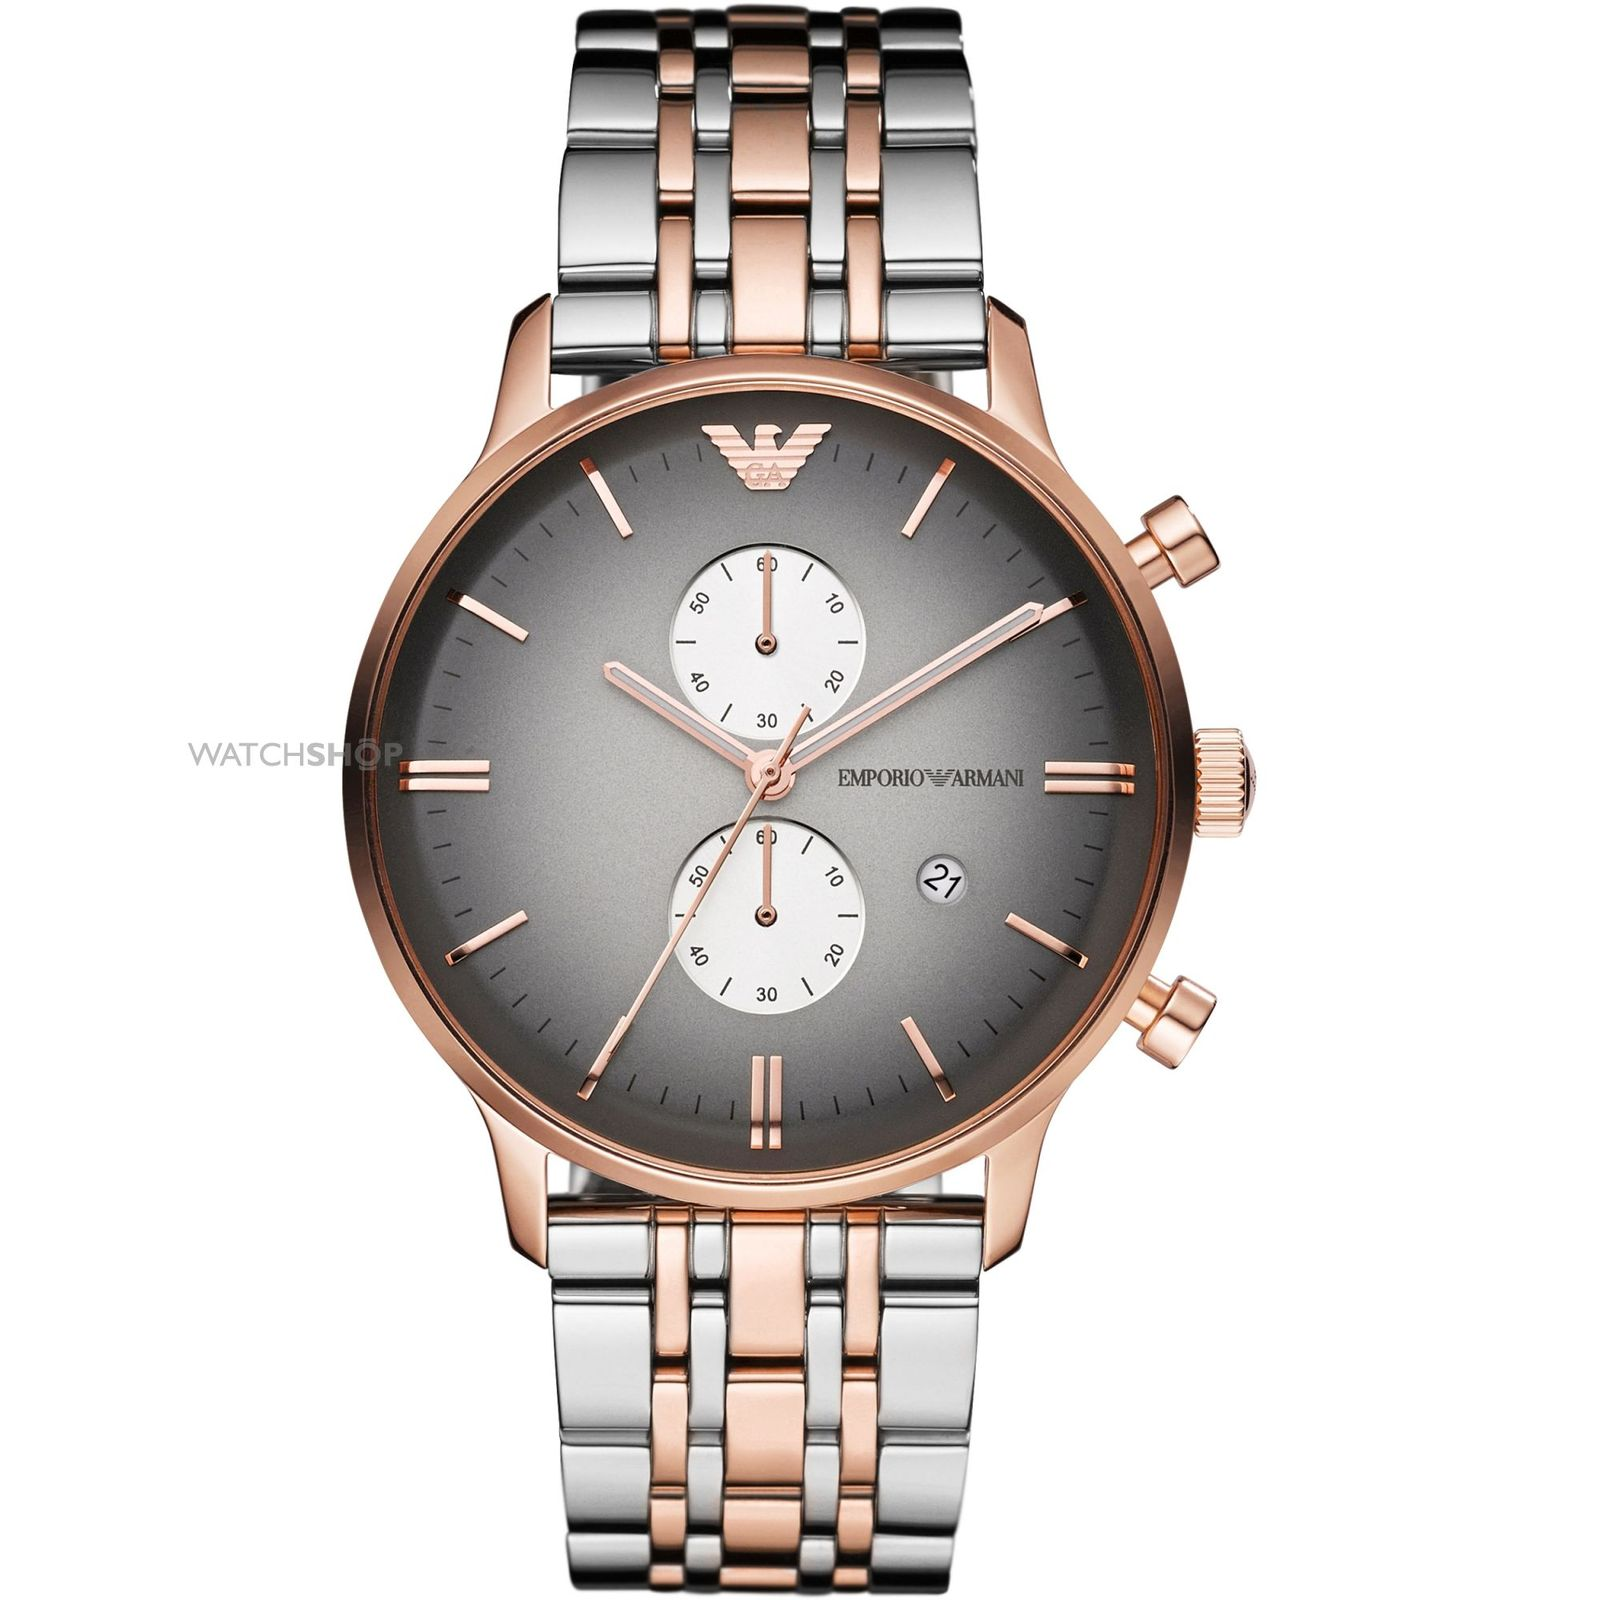 EMPORIO ARMANI AR1721 ROSE GOLD-TONE STAINLESS STEEL MENS WATCH